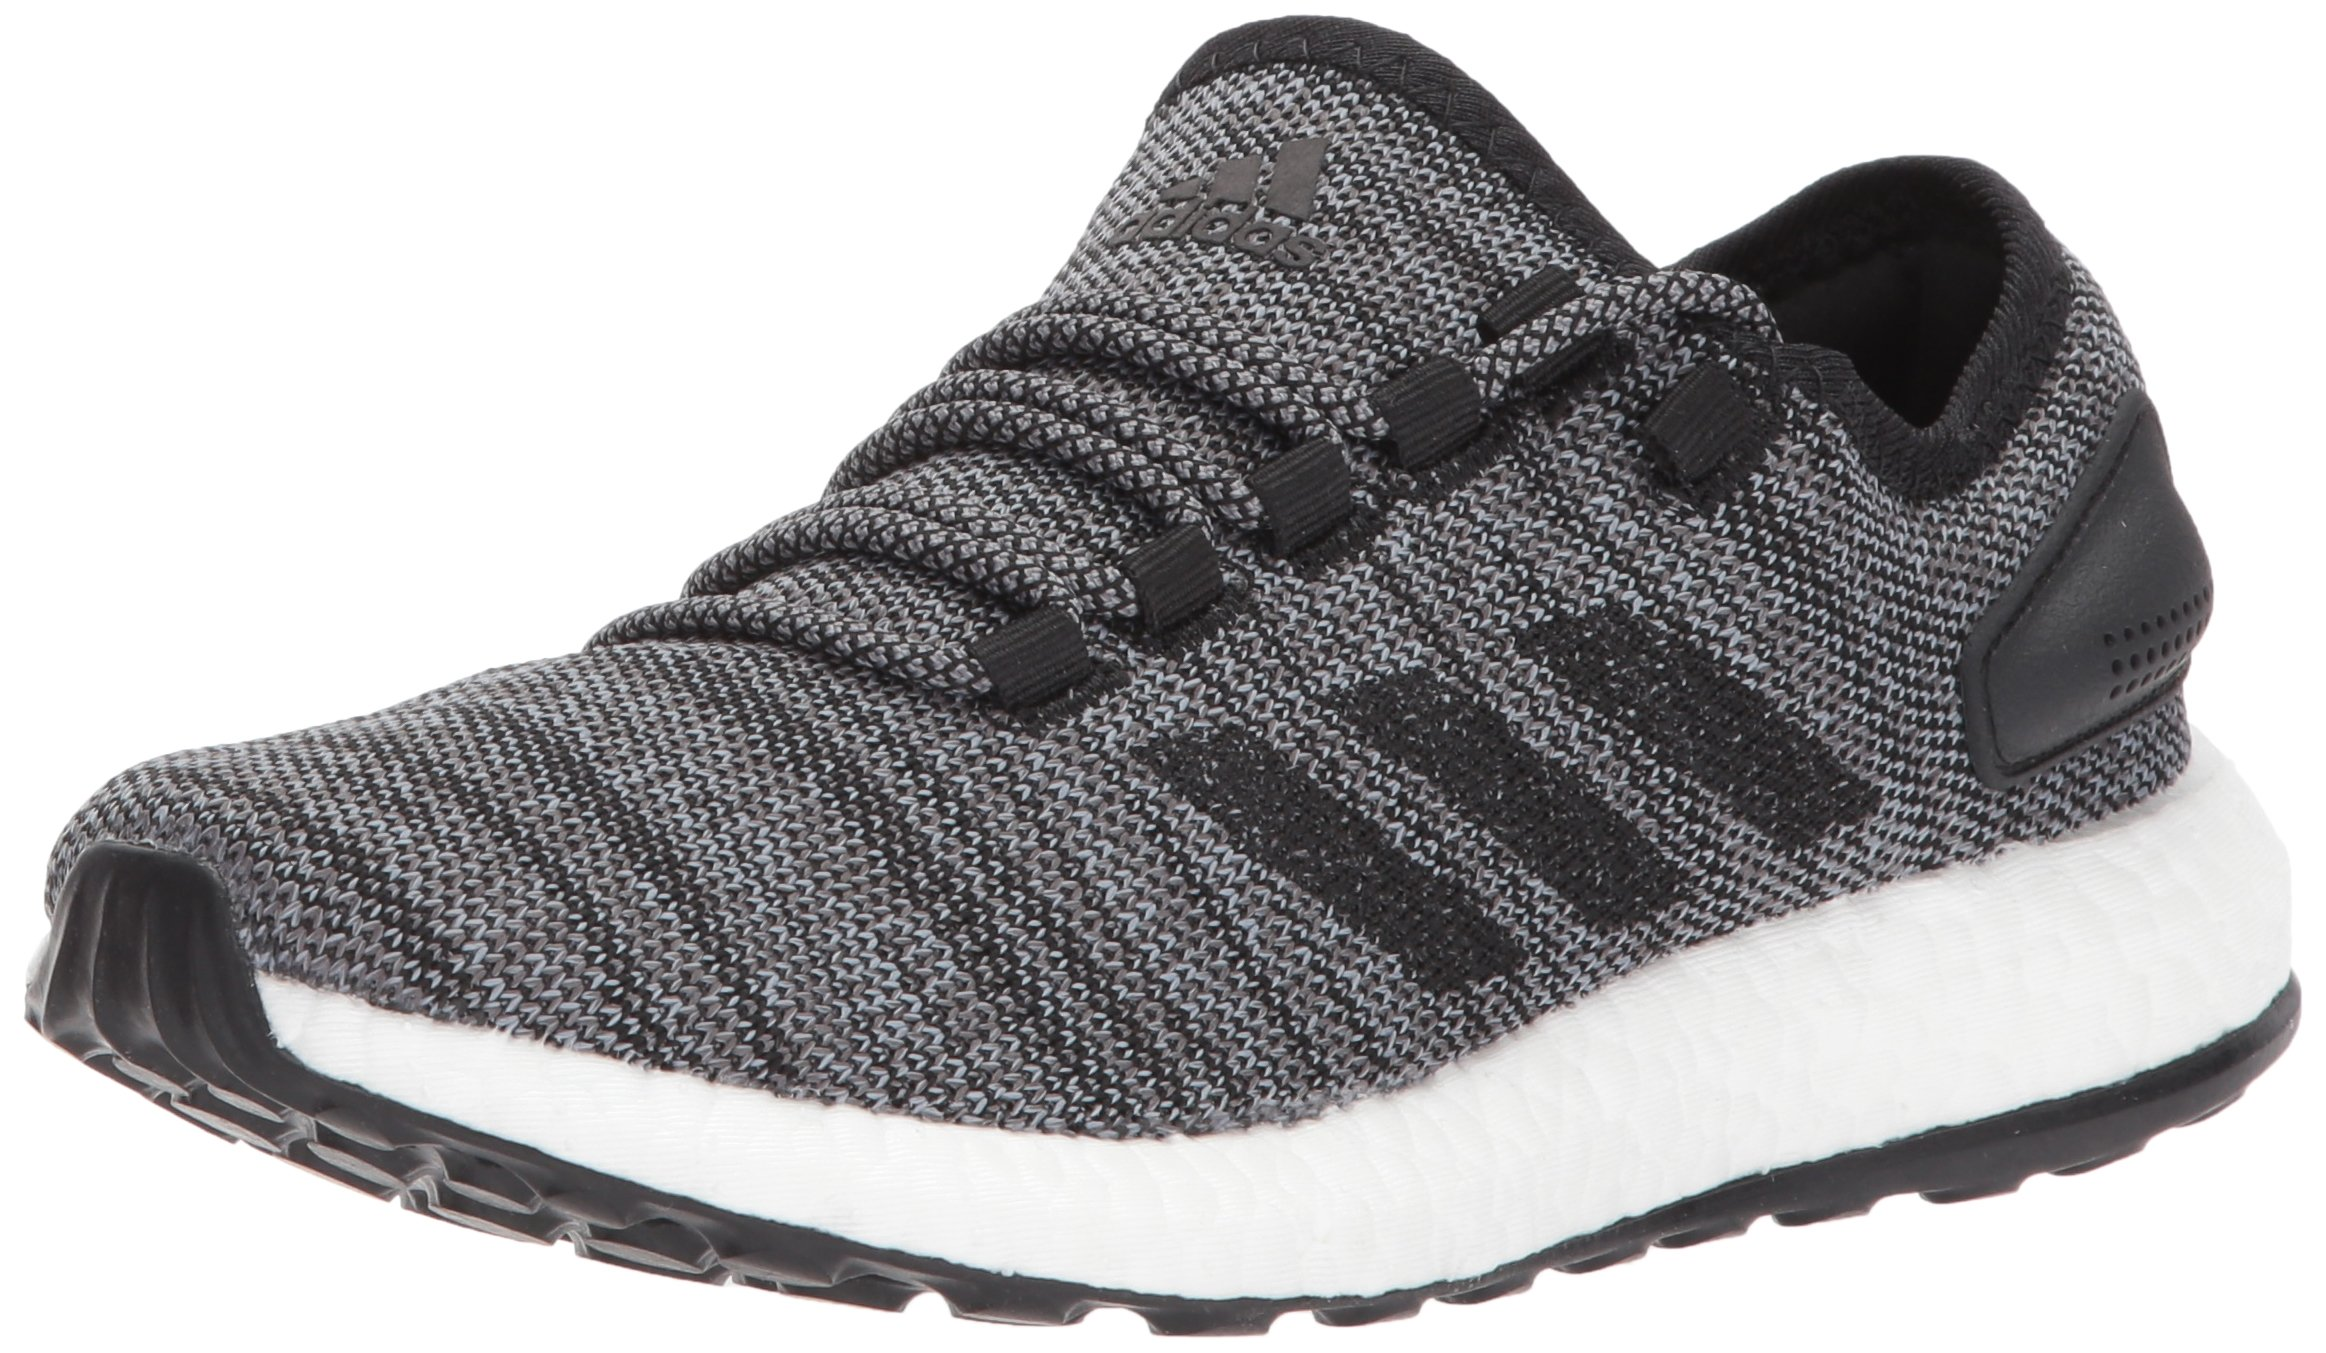 Mens Shoes adidas Energy Boost 2 ATR BlackBlack